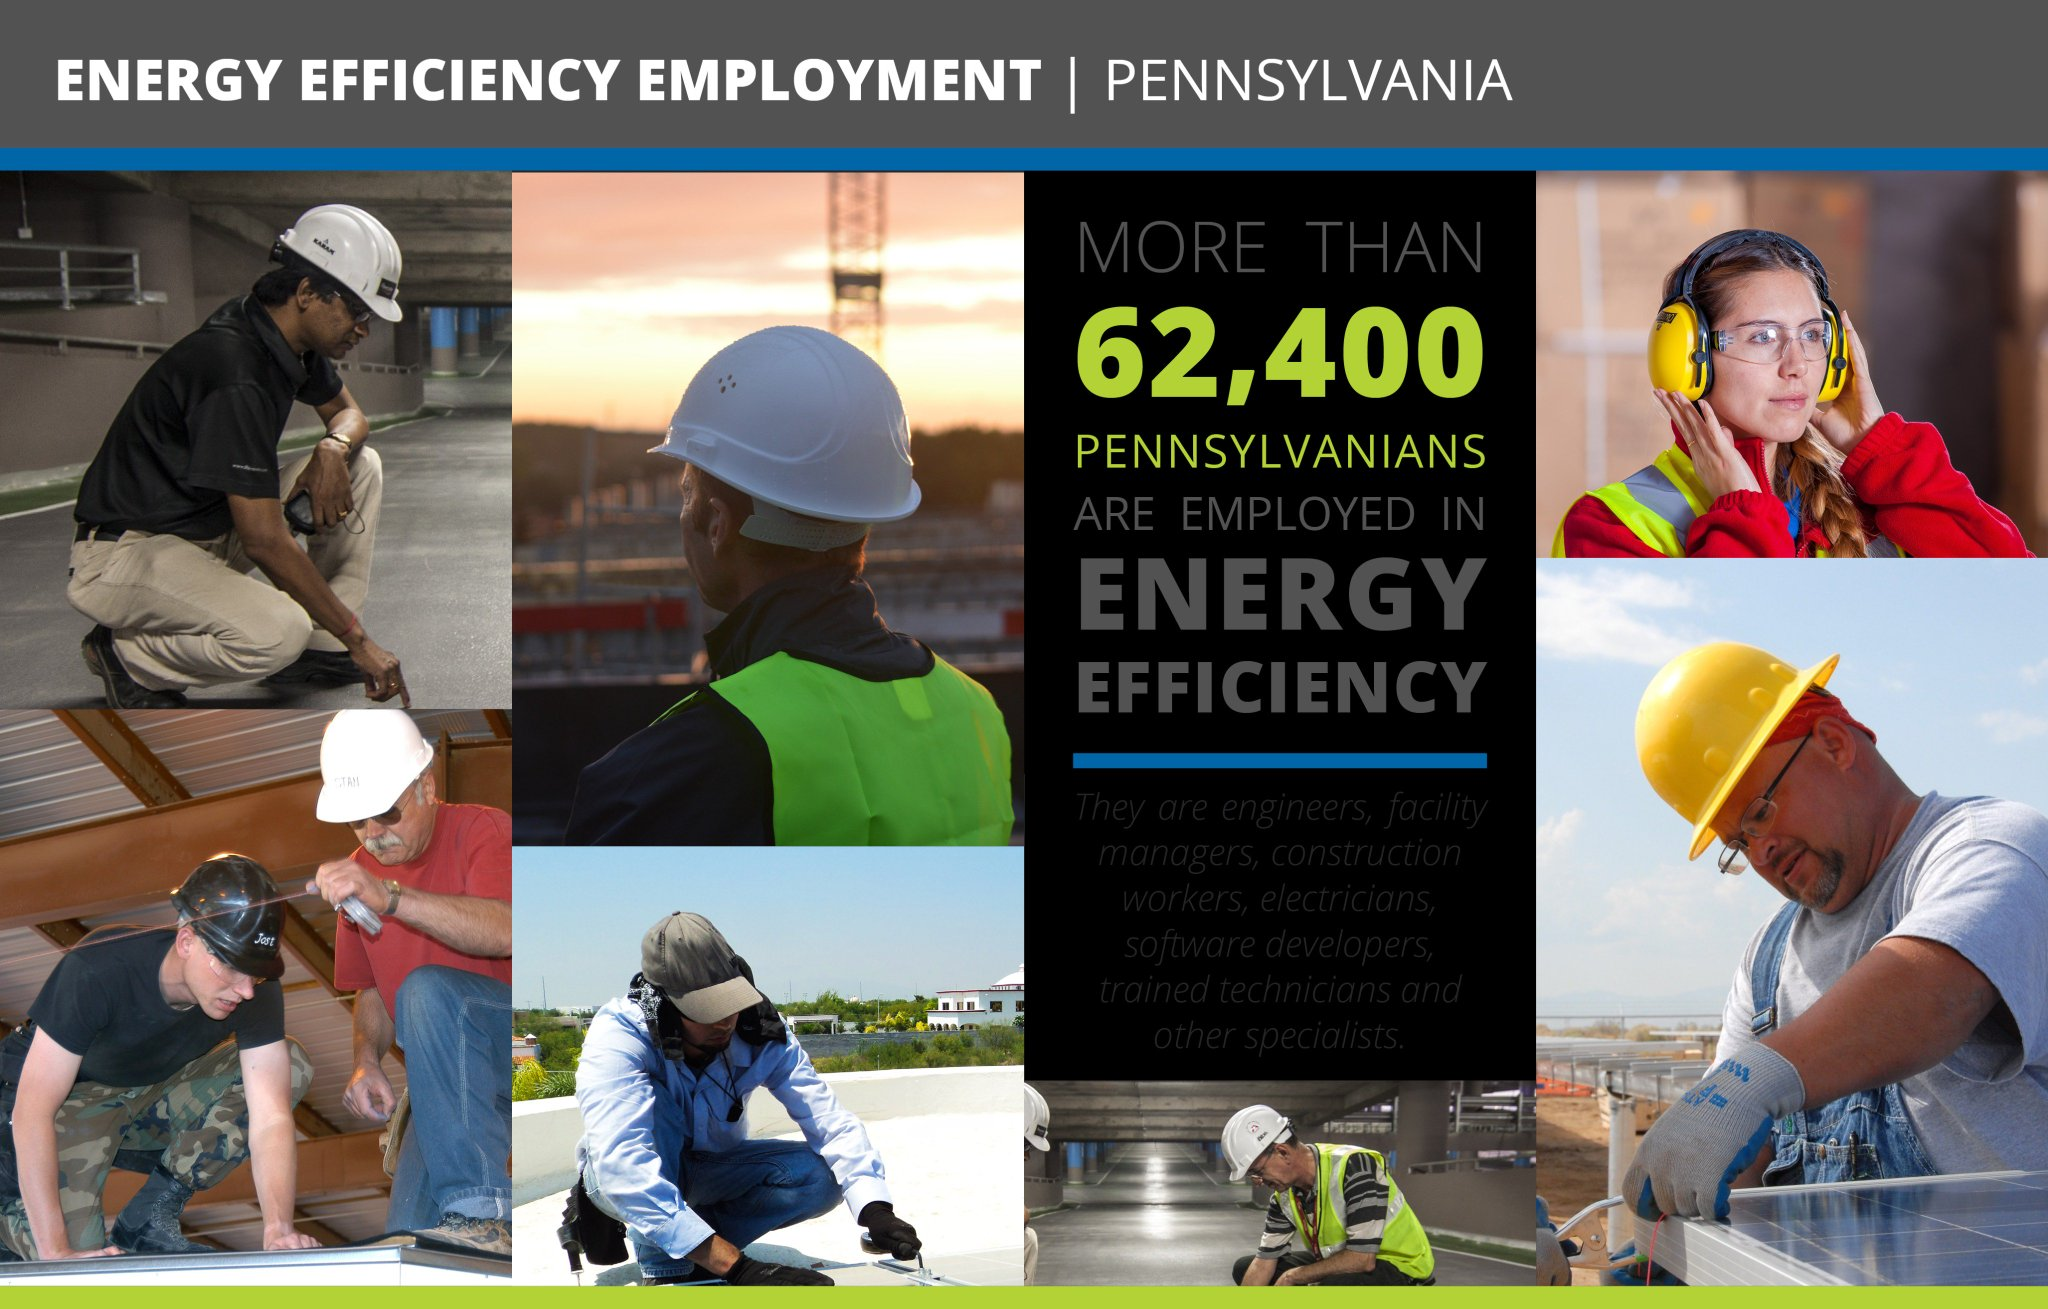 More than 62K homegrown, family-wage jobs are supported w/ Pennsylvania's #energyefficiency program, #Act129—which also saves customers $! https://t.co/SfIYgCyxi5